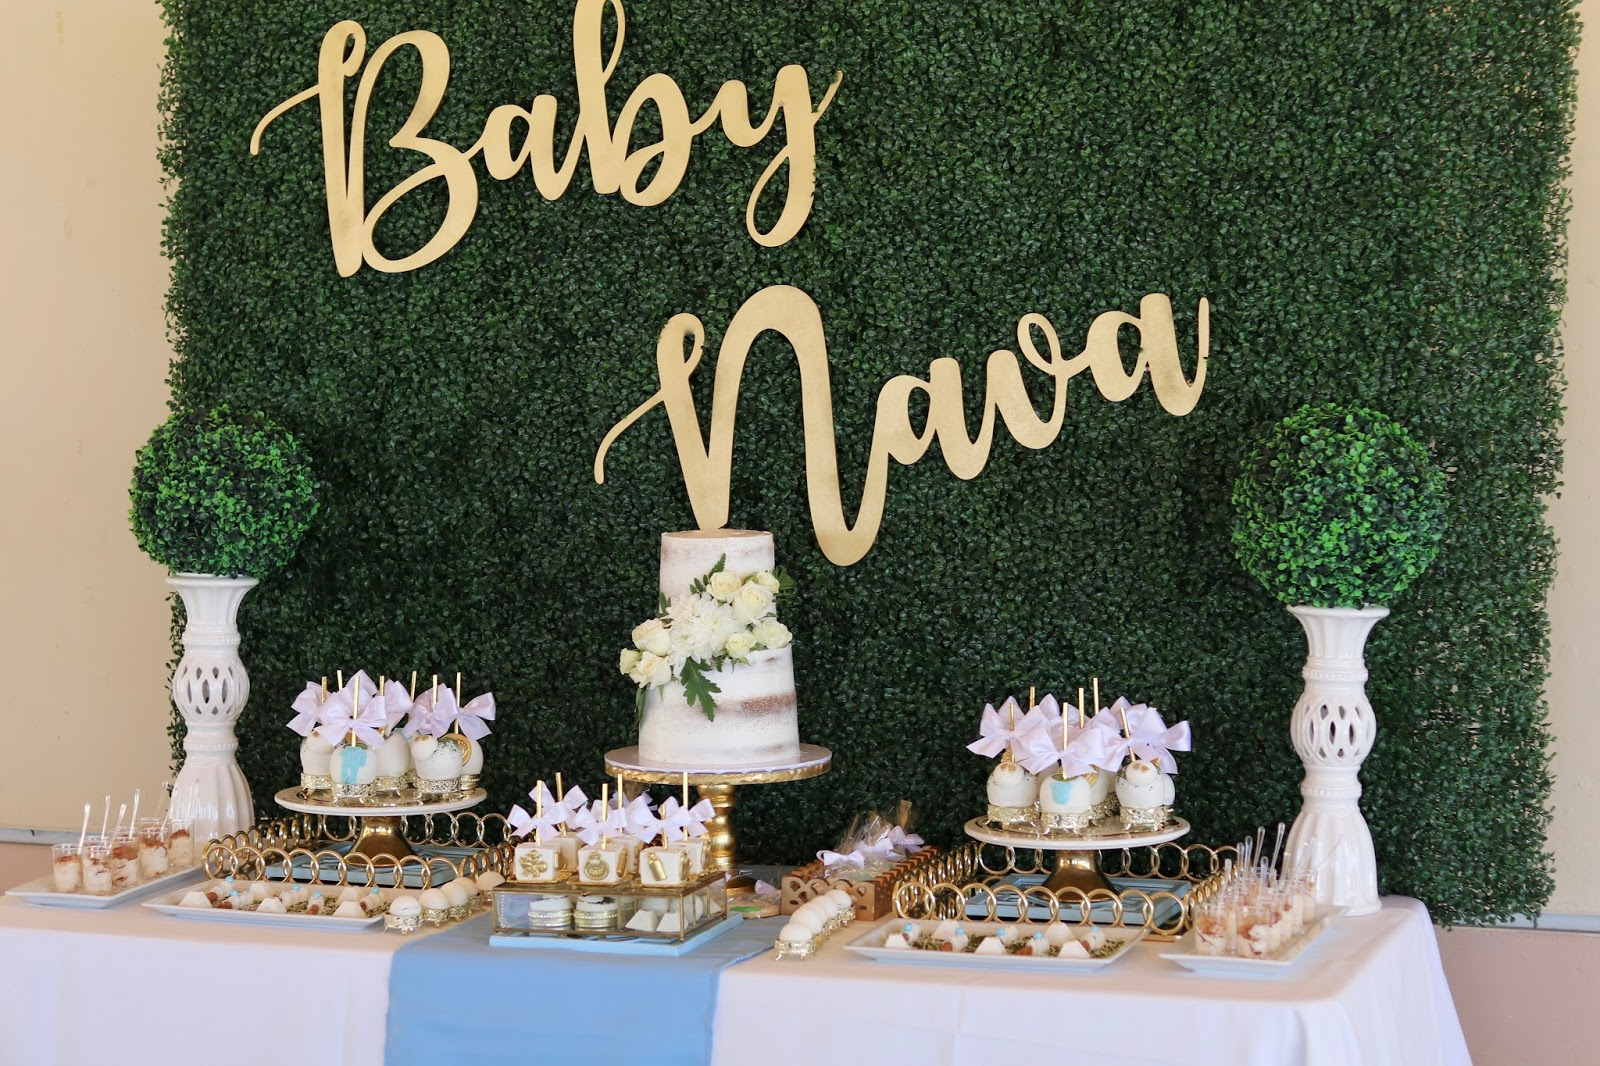 Baby Shower Dessert Table, gold and blue themed baby shower, elegant dessert table